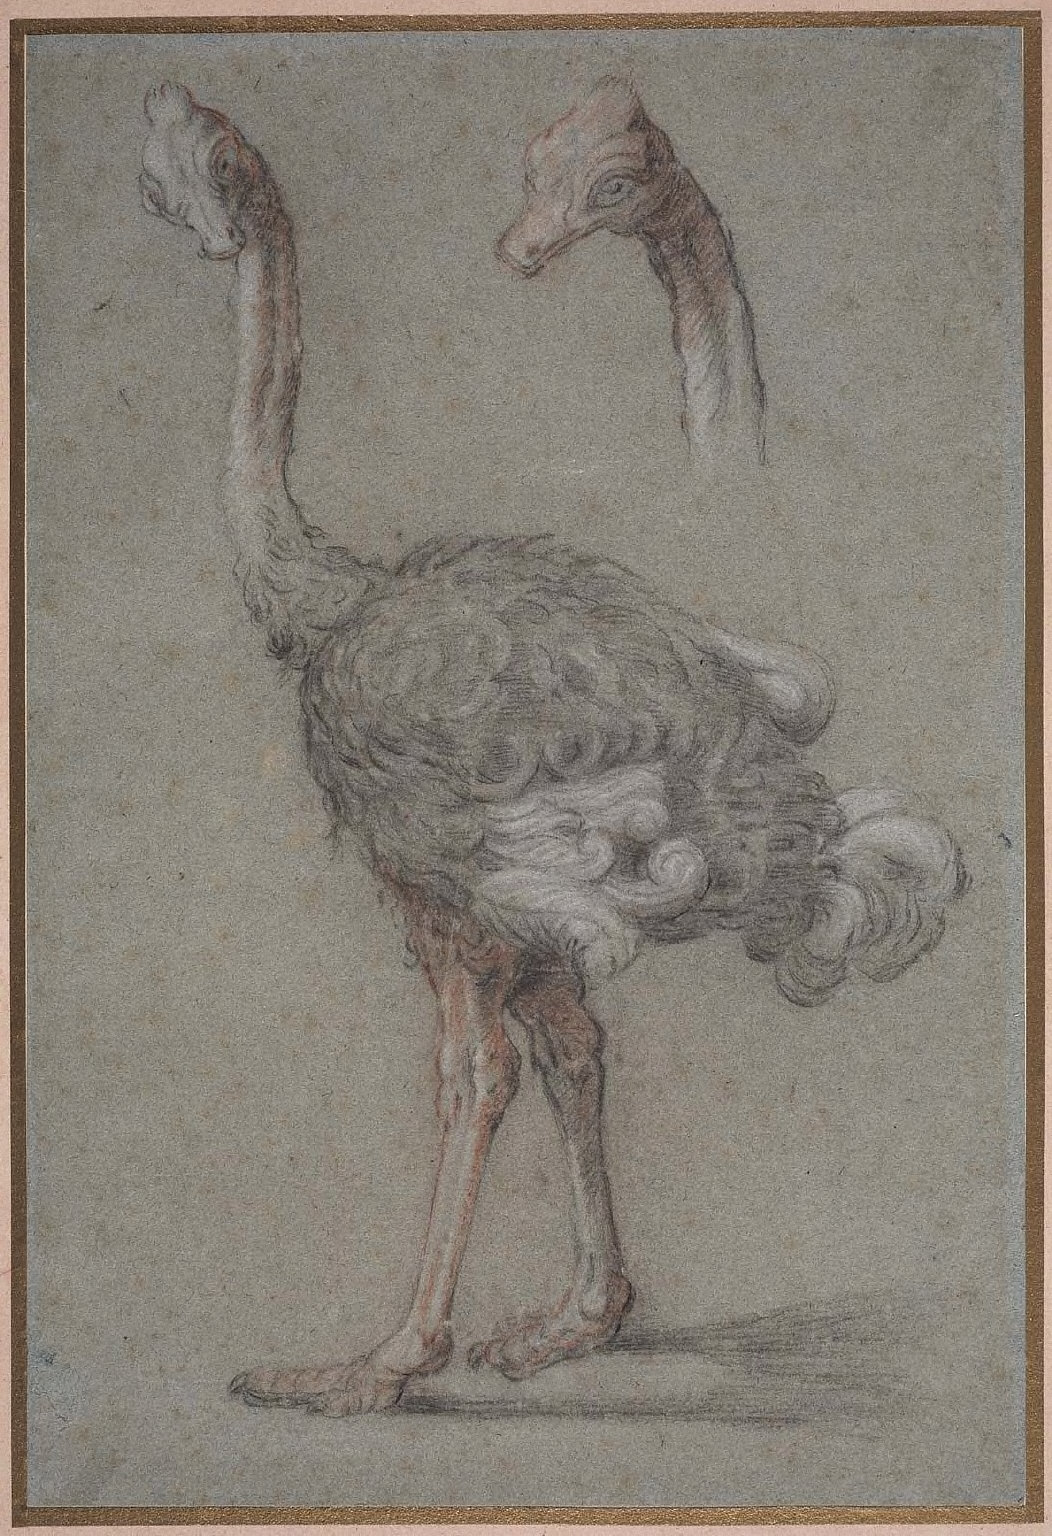 Two Studies of an Ostrich